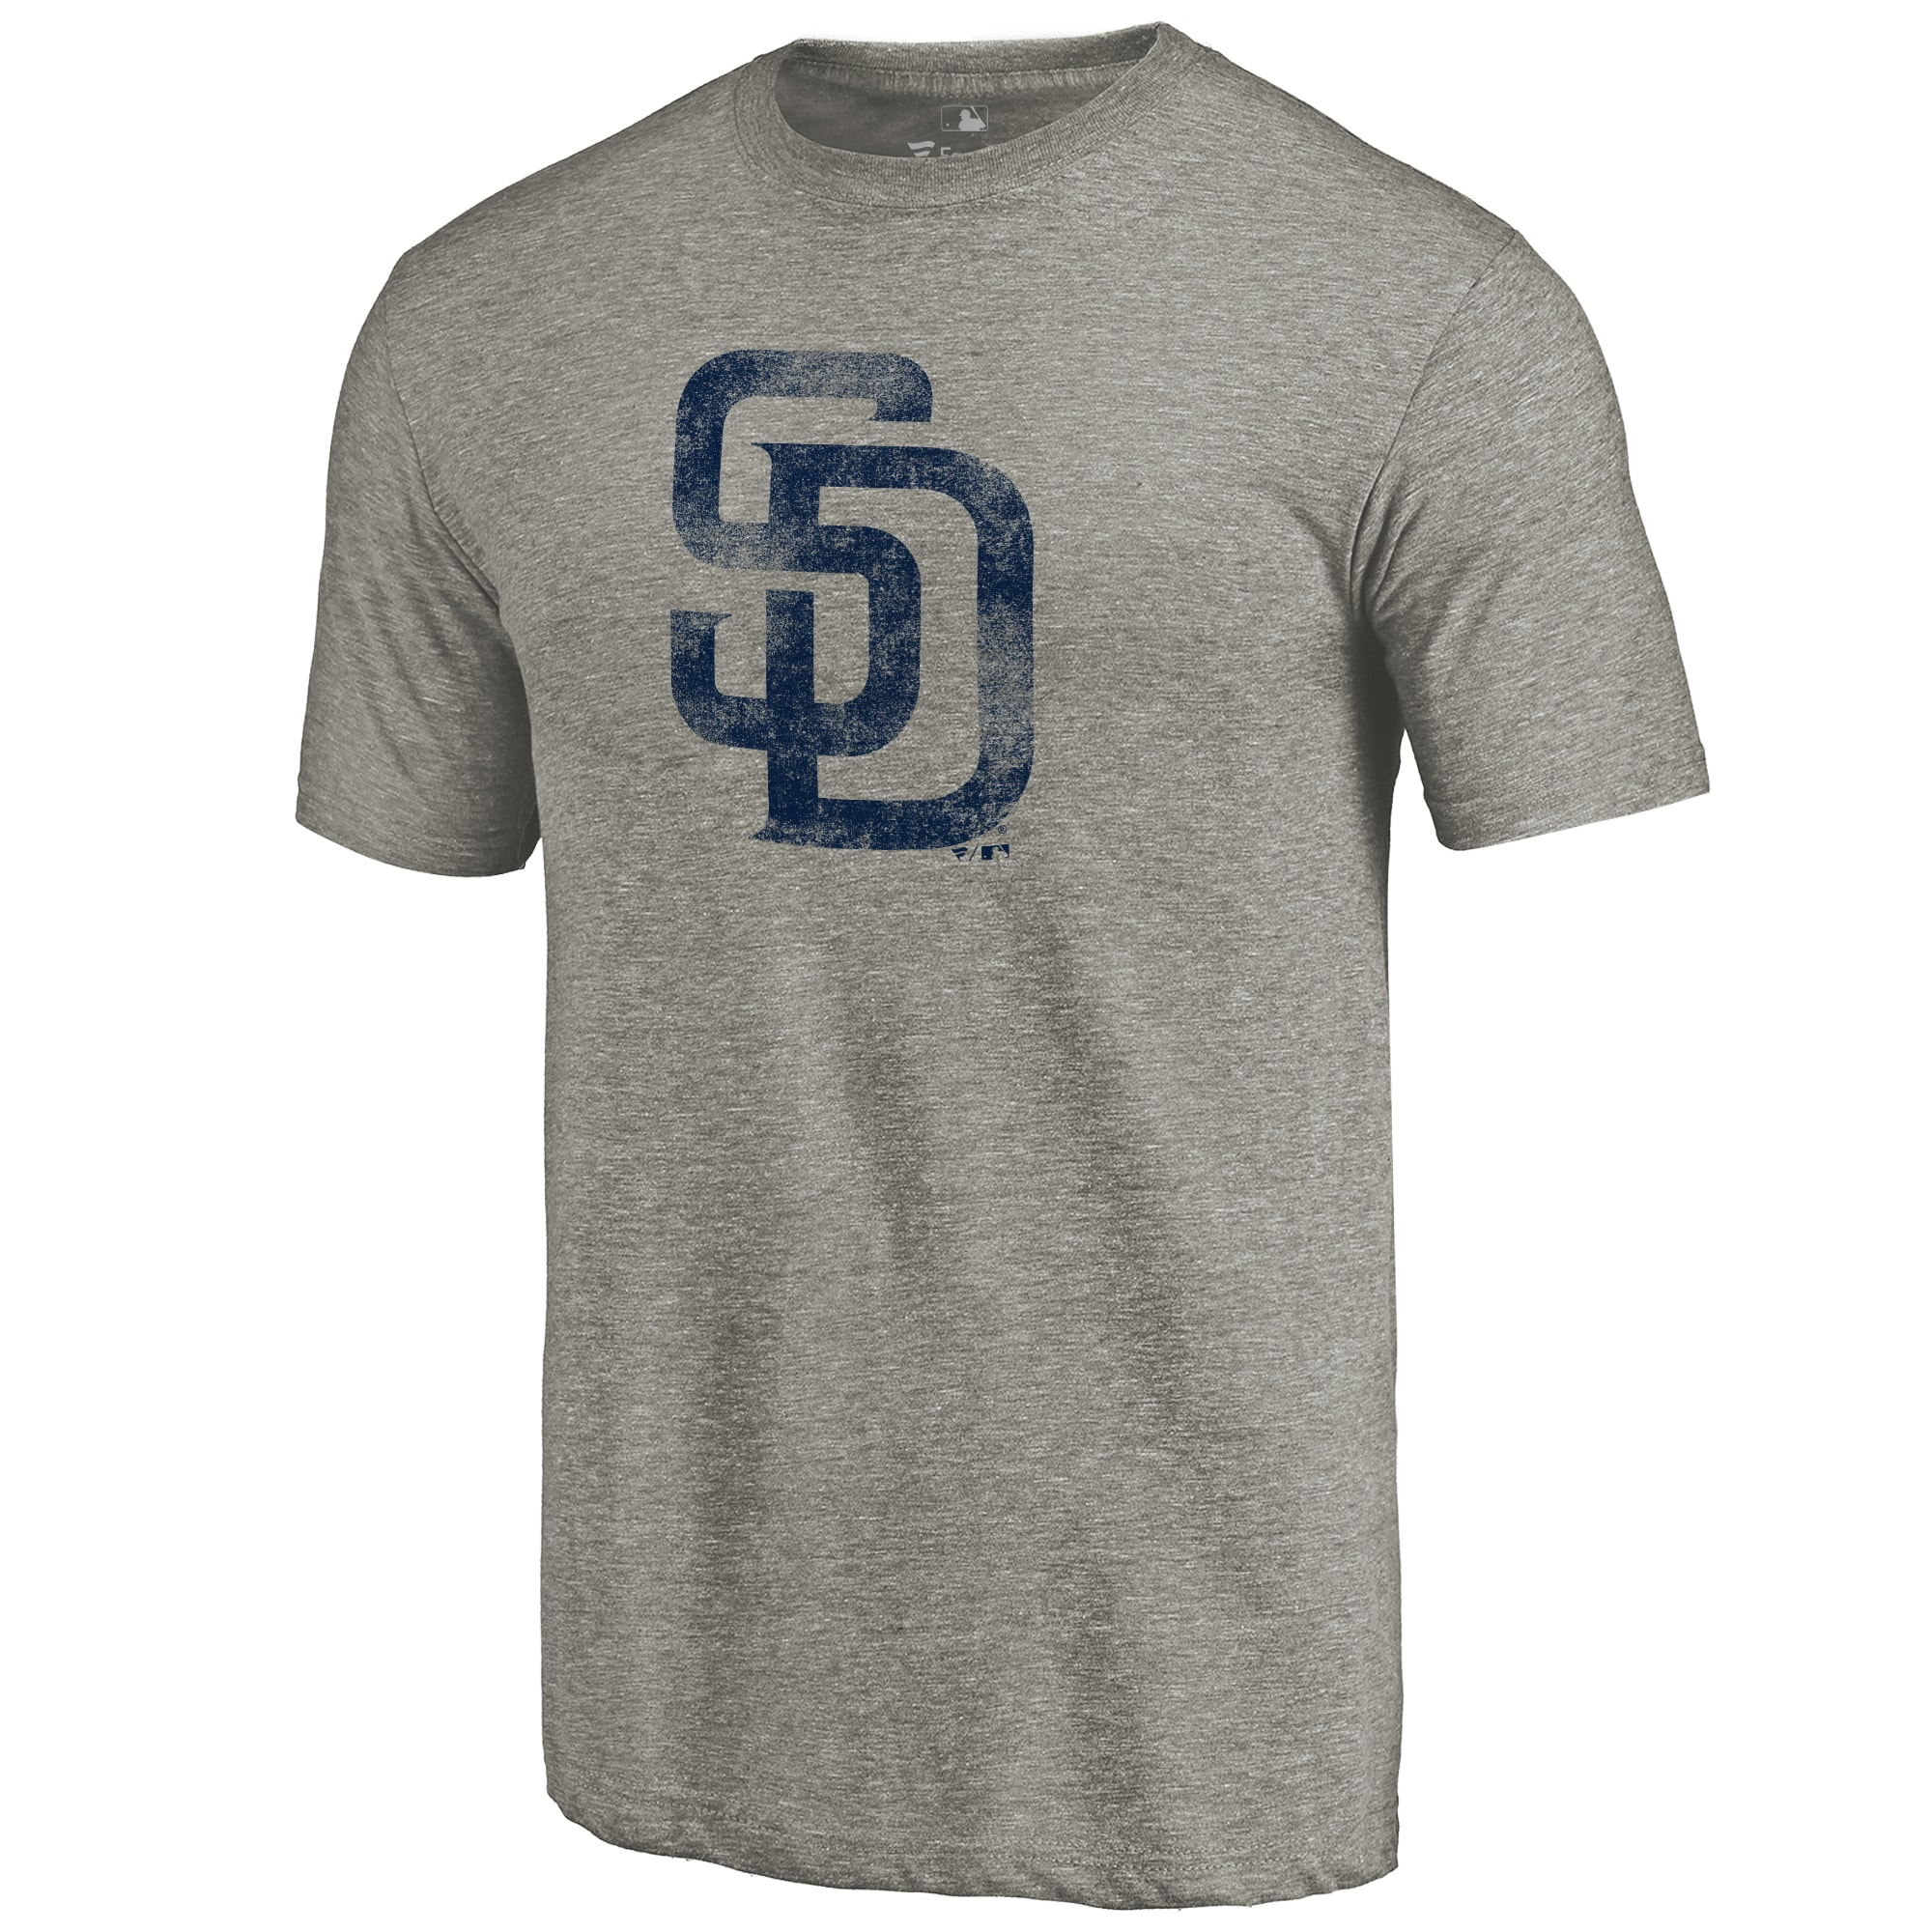 San Diego Padres Distressed Team Tri-Blend T-Shirt - Ash